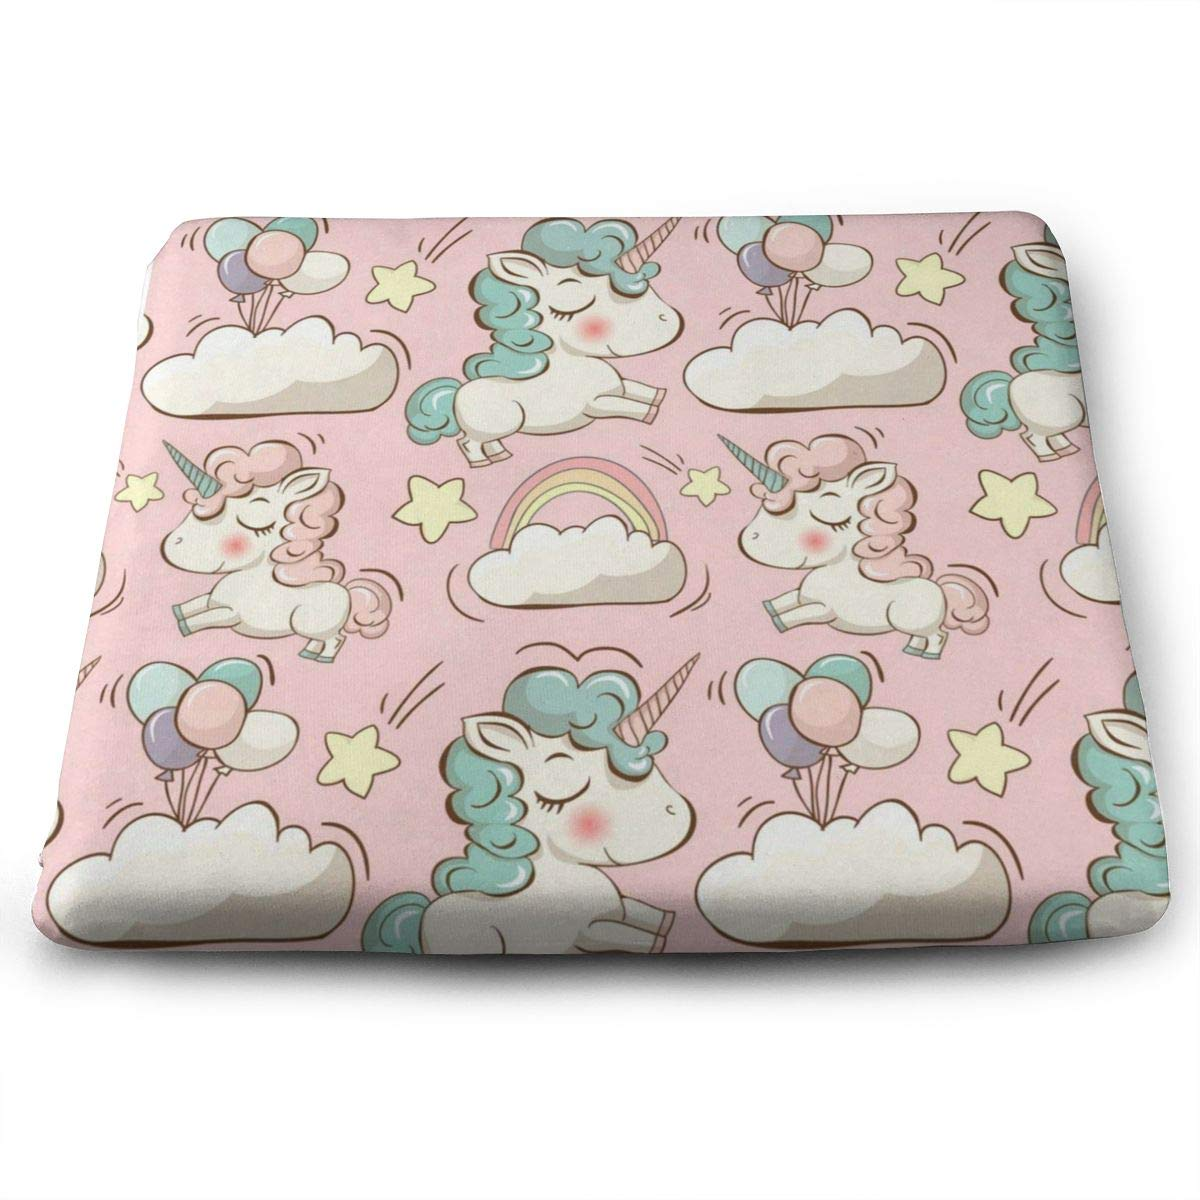 Astonishing Amazon Com Ladninag Seat Cushion Cute Pink Unicorn Chair Gmtry Best Dining Table And Chair Ideas Images Gmtryco